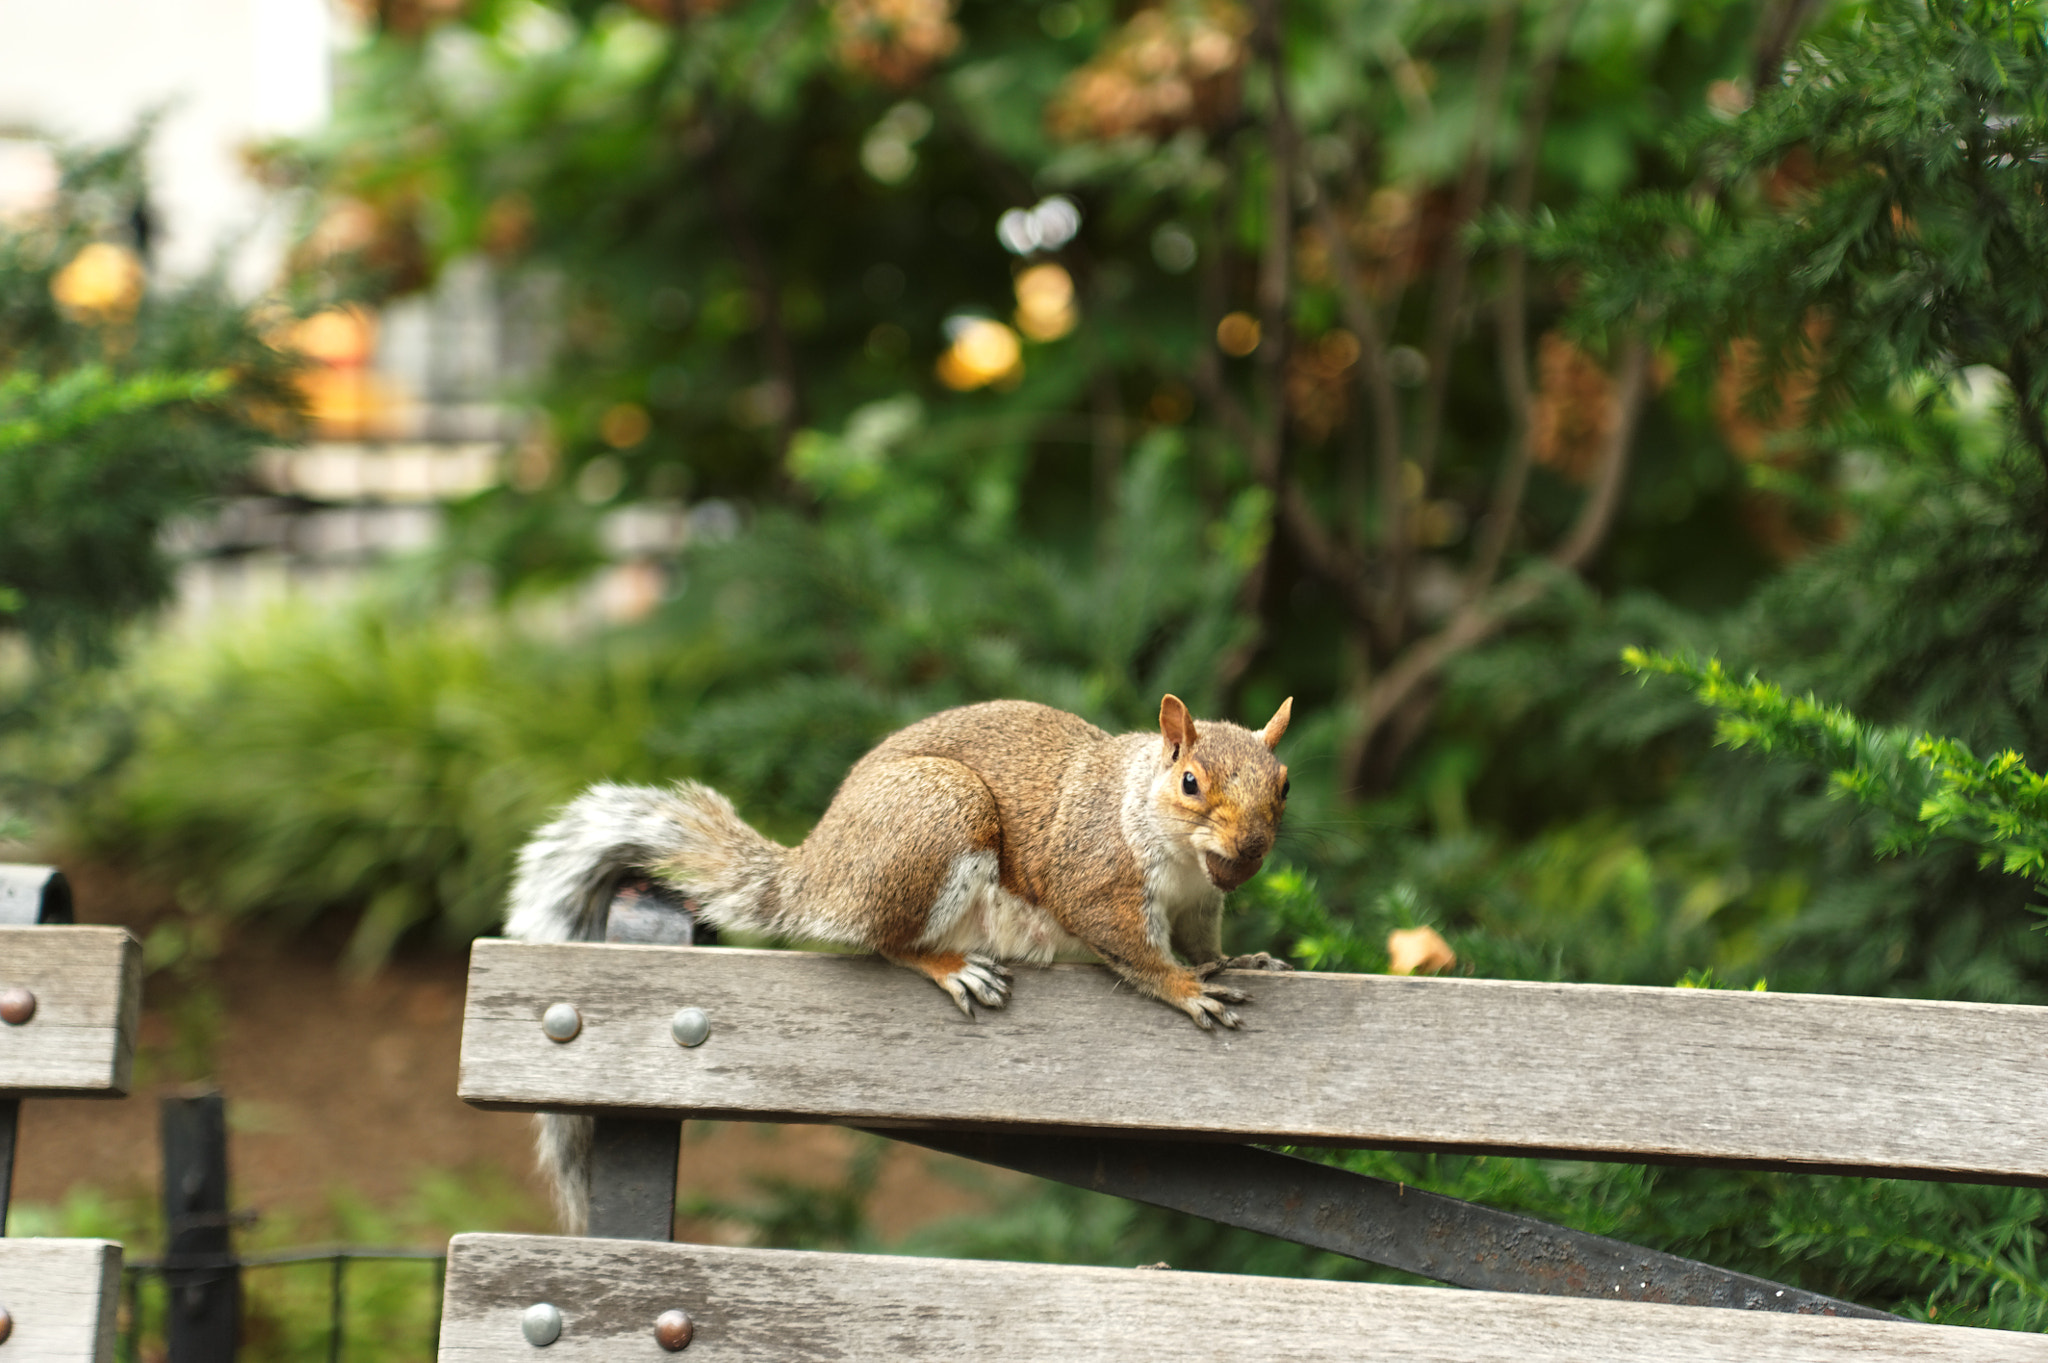 Photograph A squirrel by the break by Michael FRANCHITTI on 500px